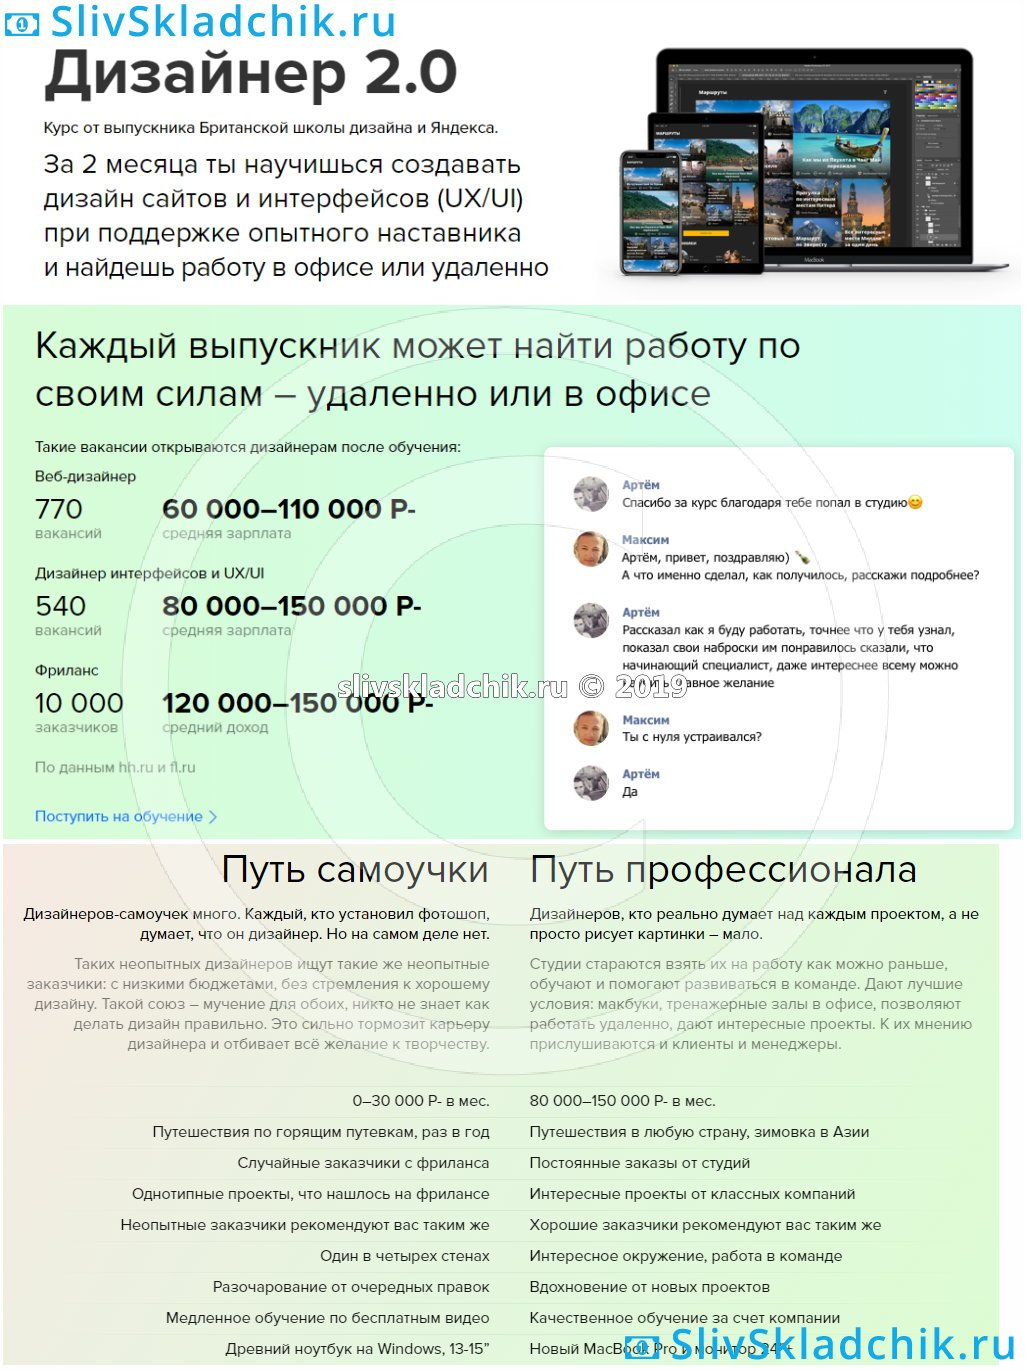 screenshot-insliv.ru-2019-06-04-09-36-29-153.jpg